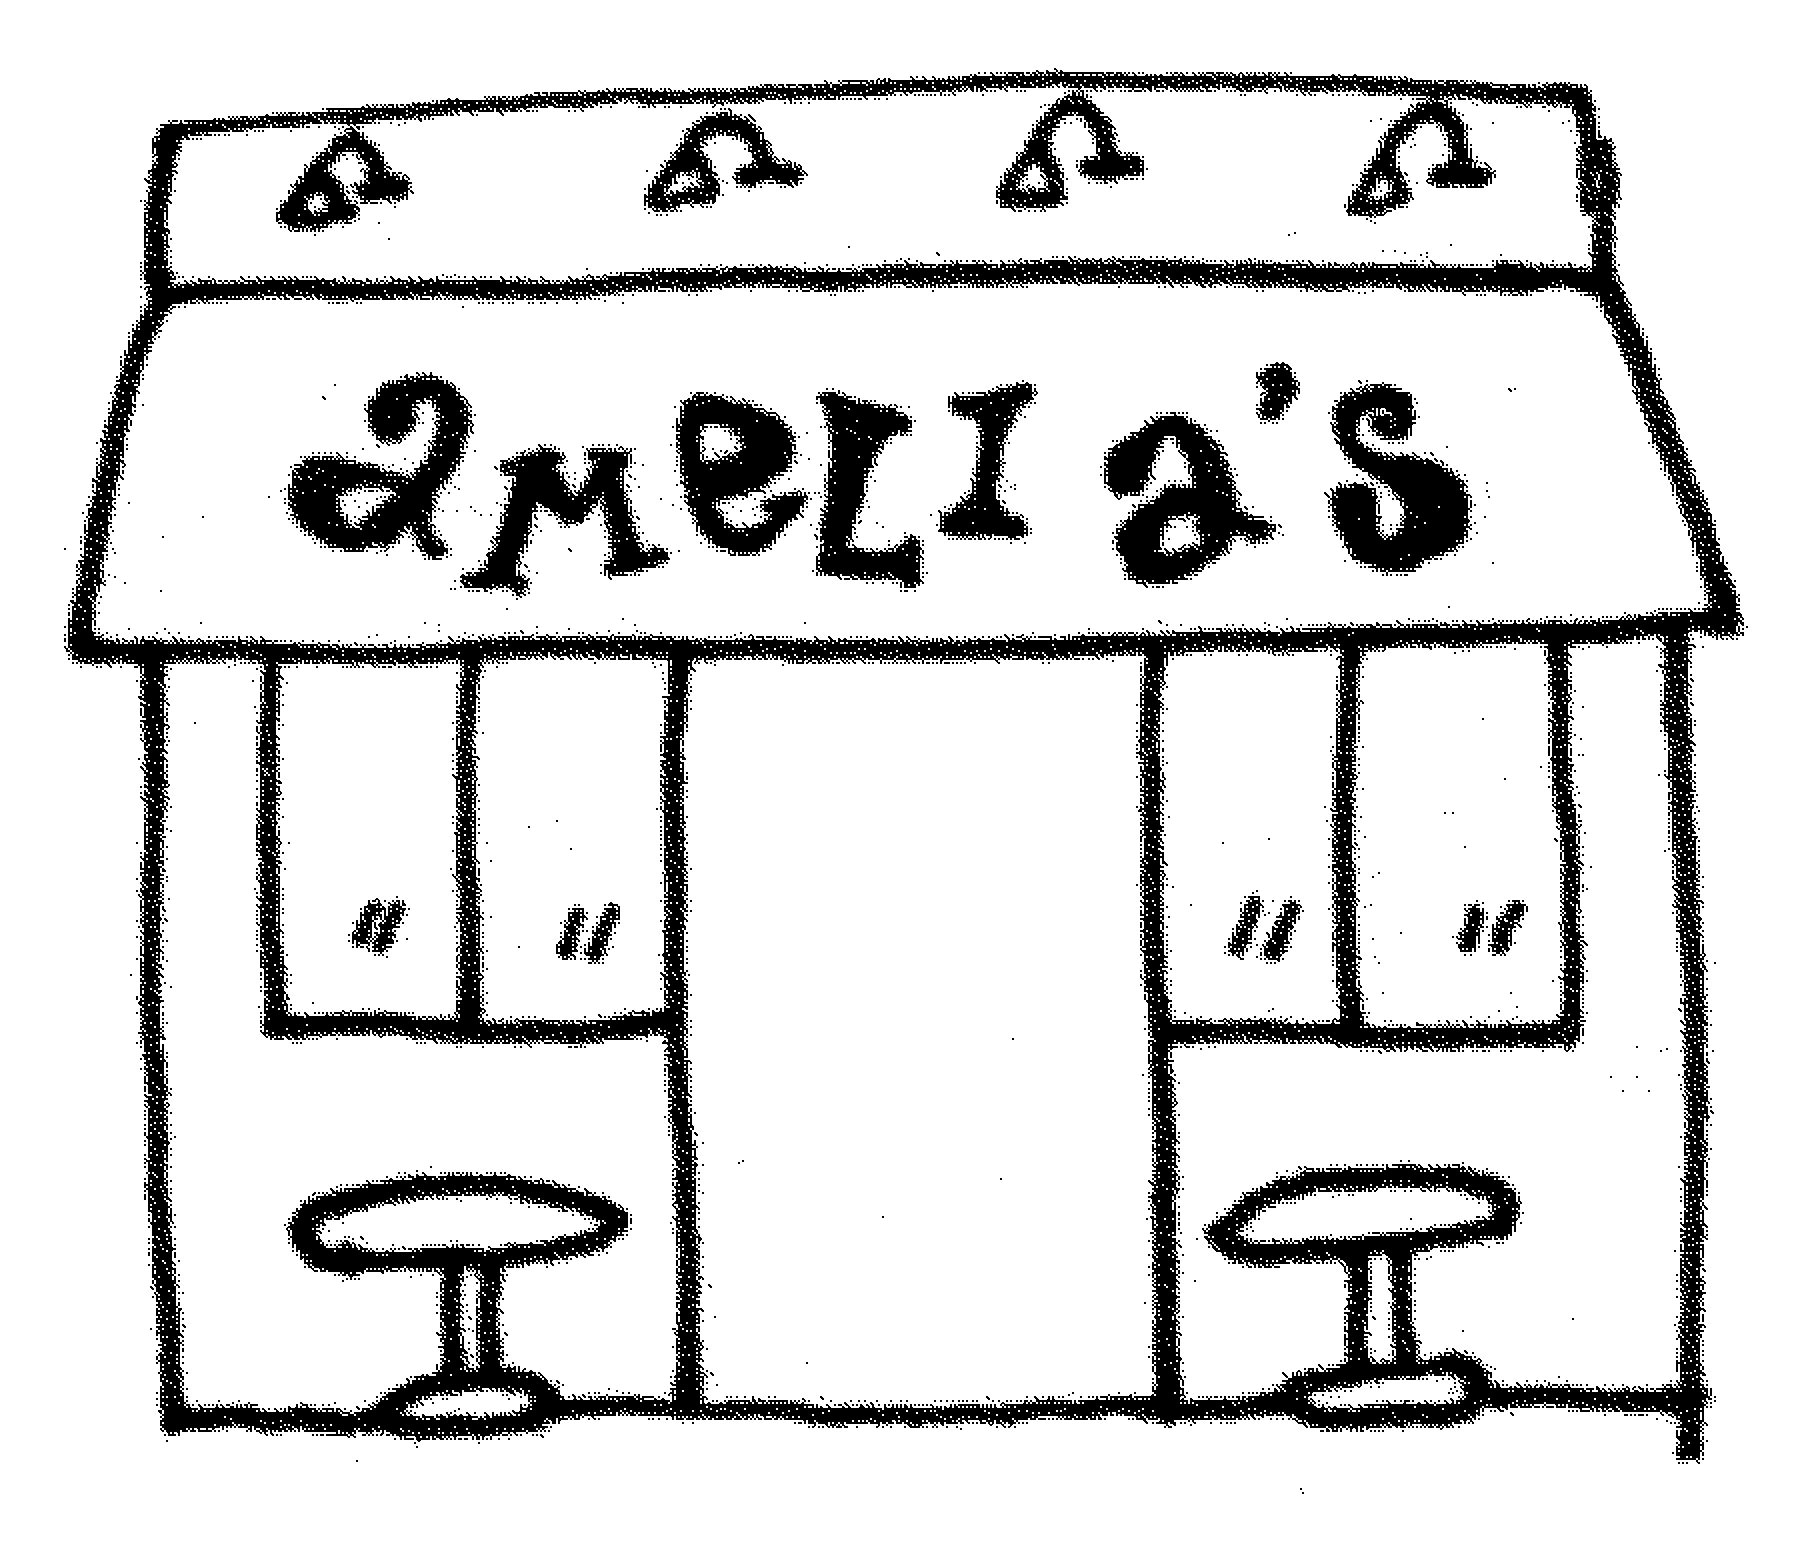 Coloring Pages for Restaurants to Print 19r - Save it to your computer